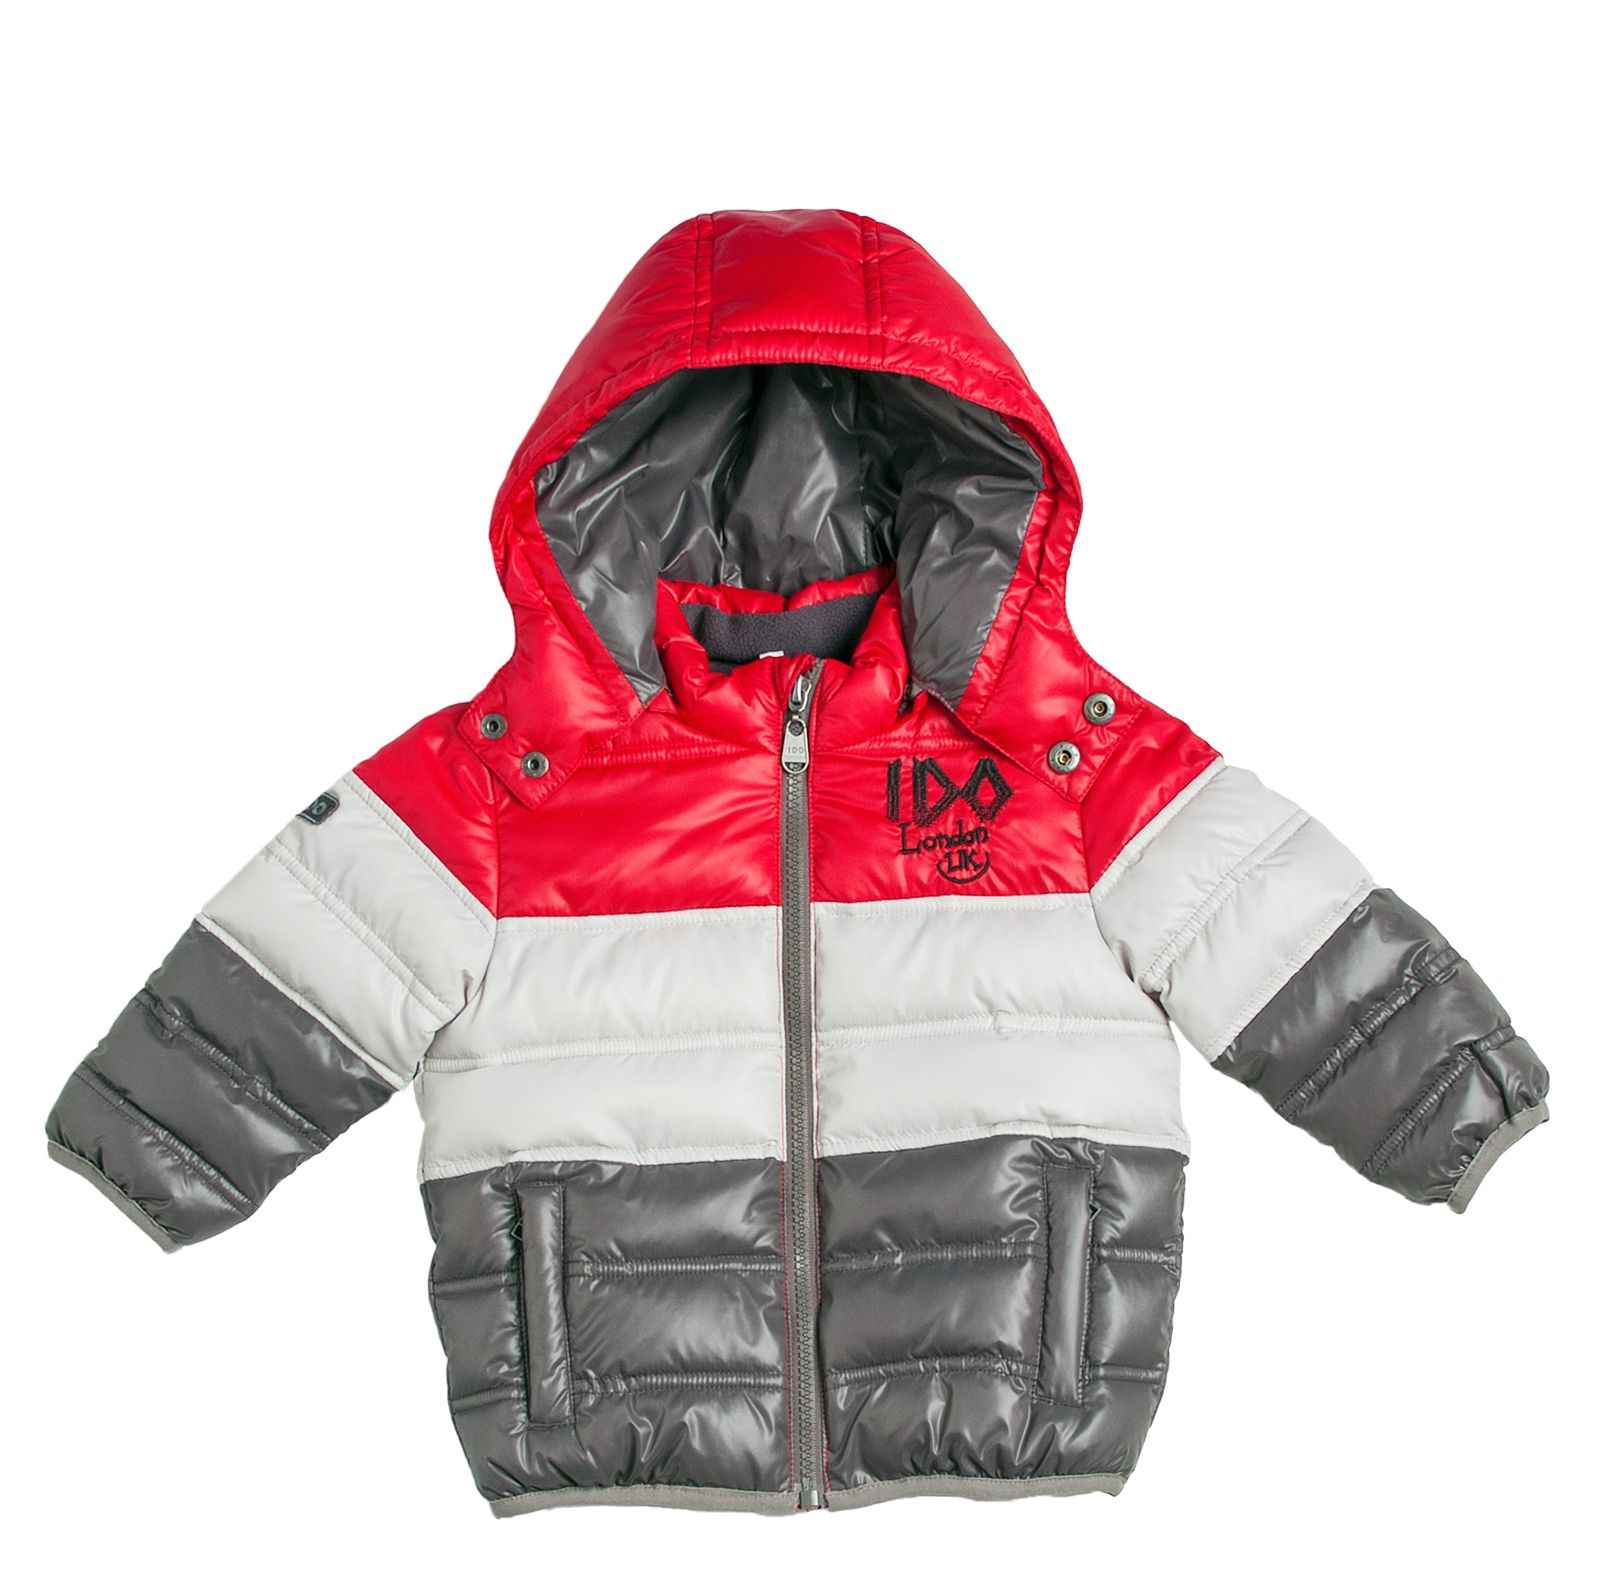 Hooded tricolor jacket